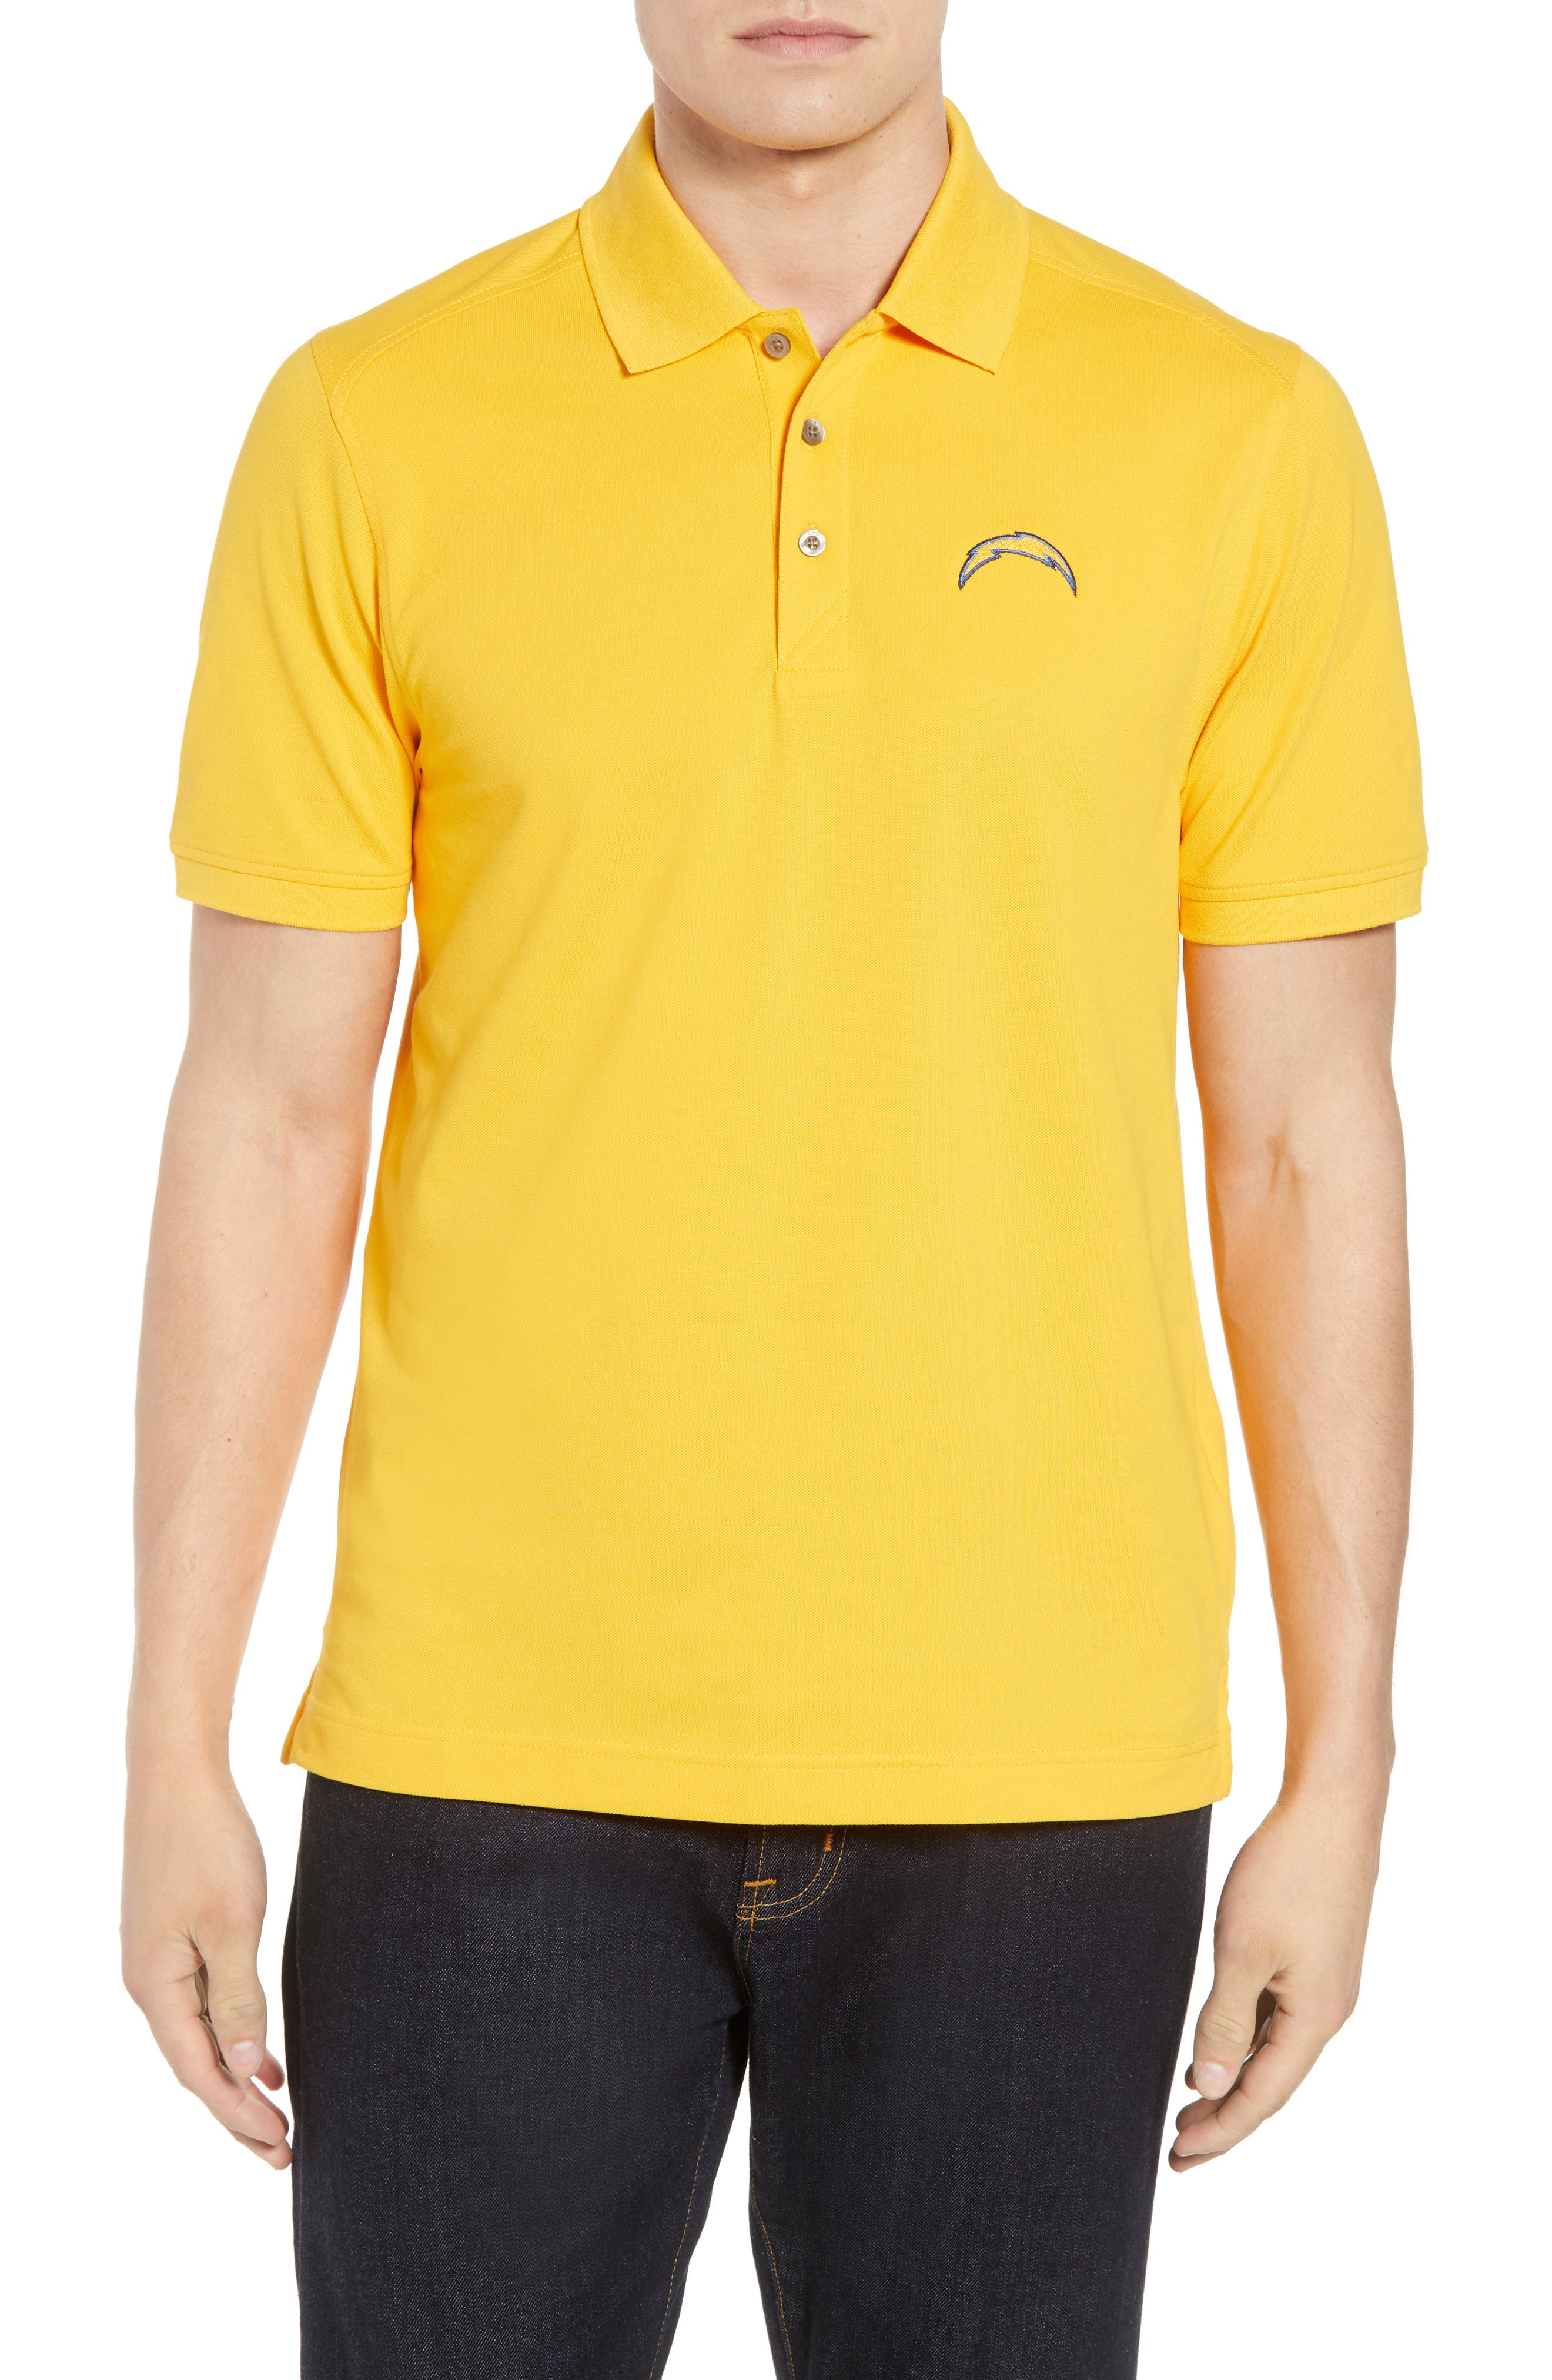 Los Angeles Chargers - Advantage Regular Fit DryTec Polo,                             Main thumbnail 1, color,                             COLLEGE GOLD